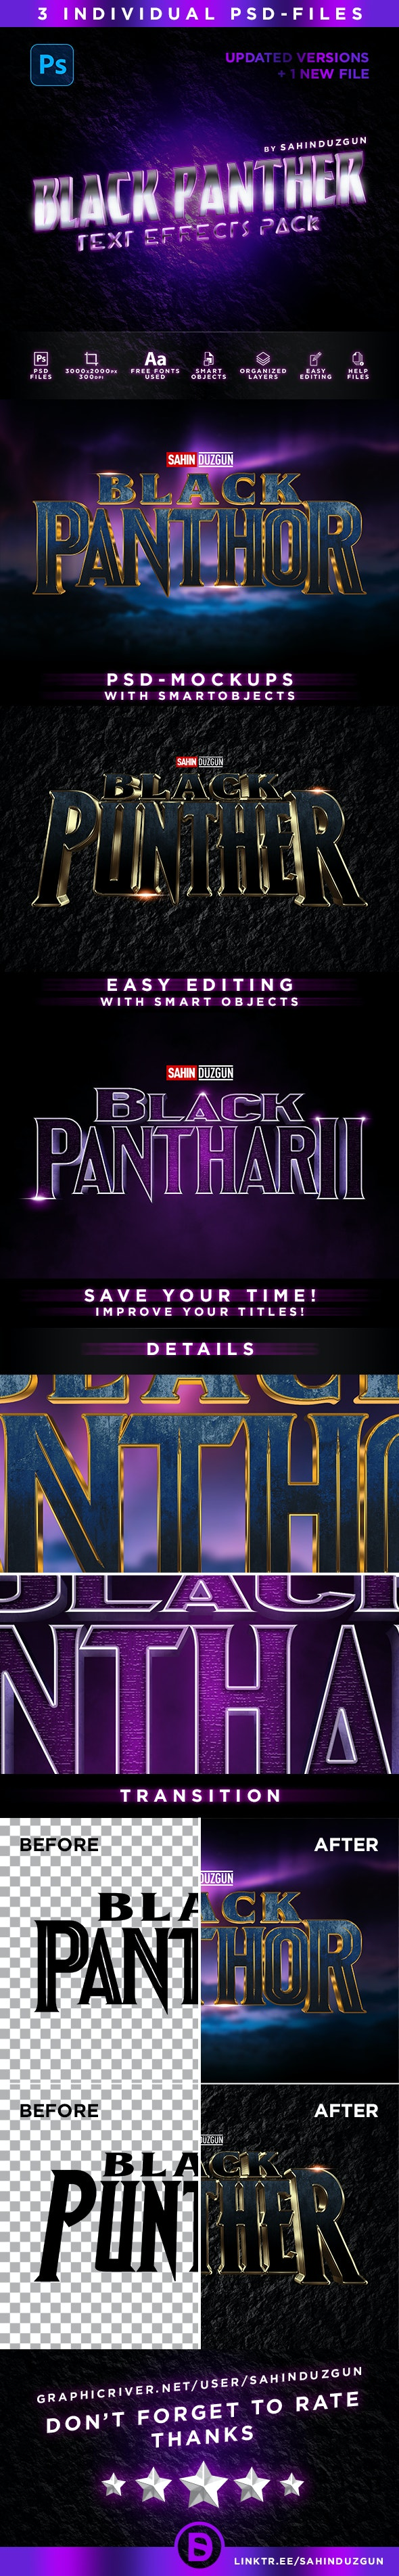 Black Panther   Text-Effects/Mockups   Template-Package - Text Effects Actions